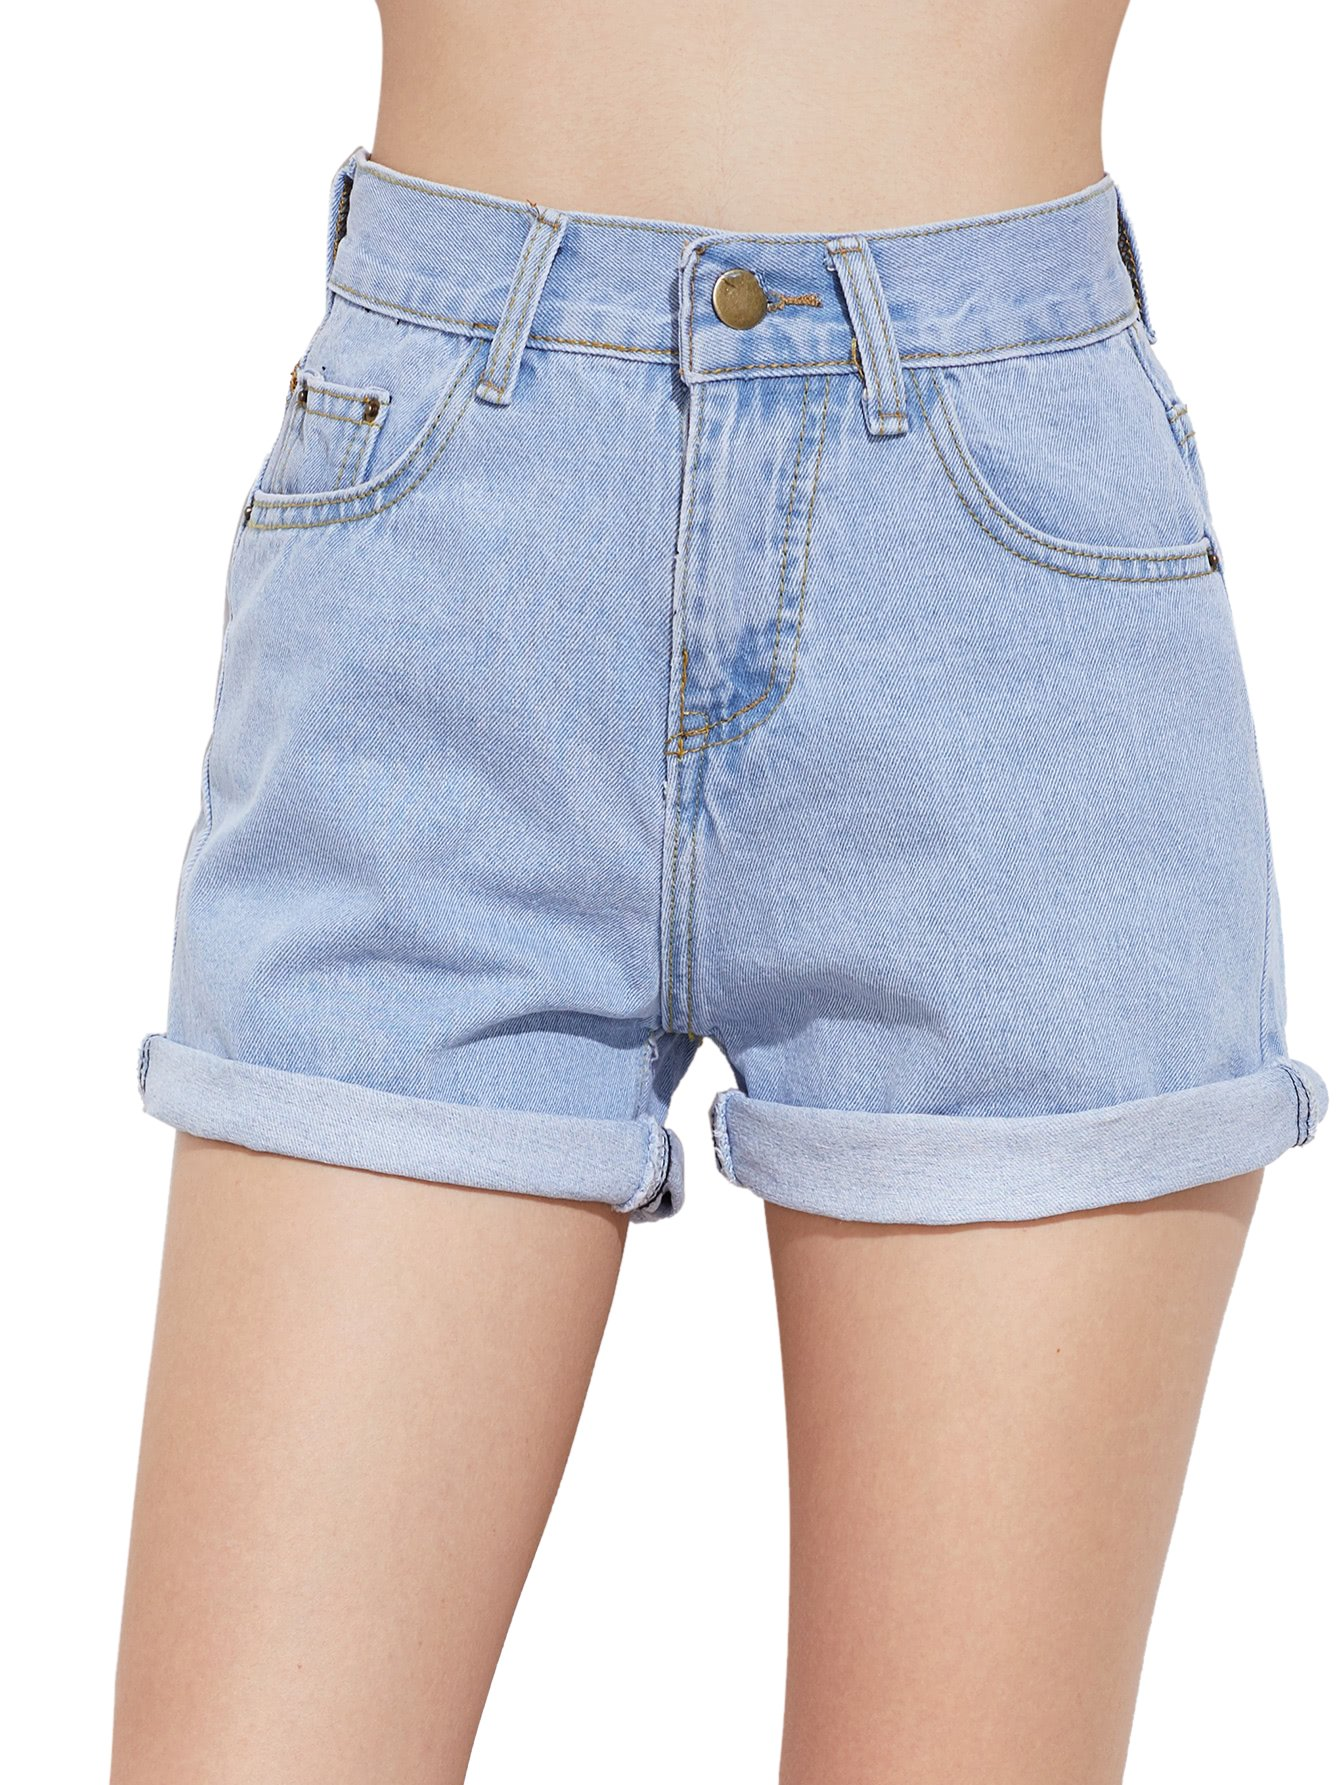 SweatyRocks Women's Retro High Waisted Rolled Denim Jean Shorts with Pockets (Medium, Light Blue#4)